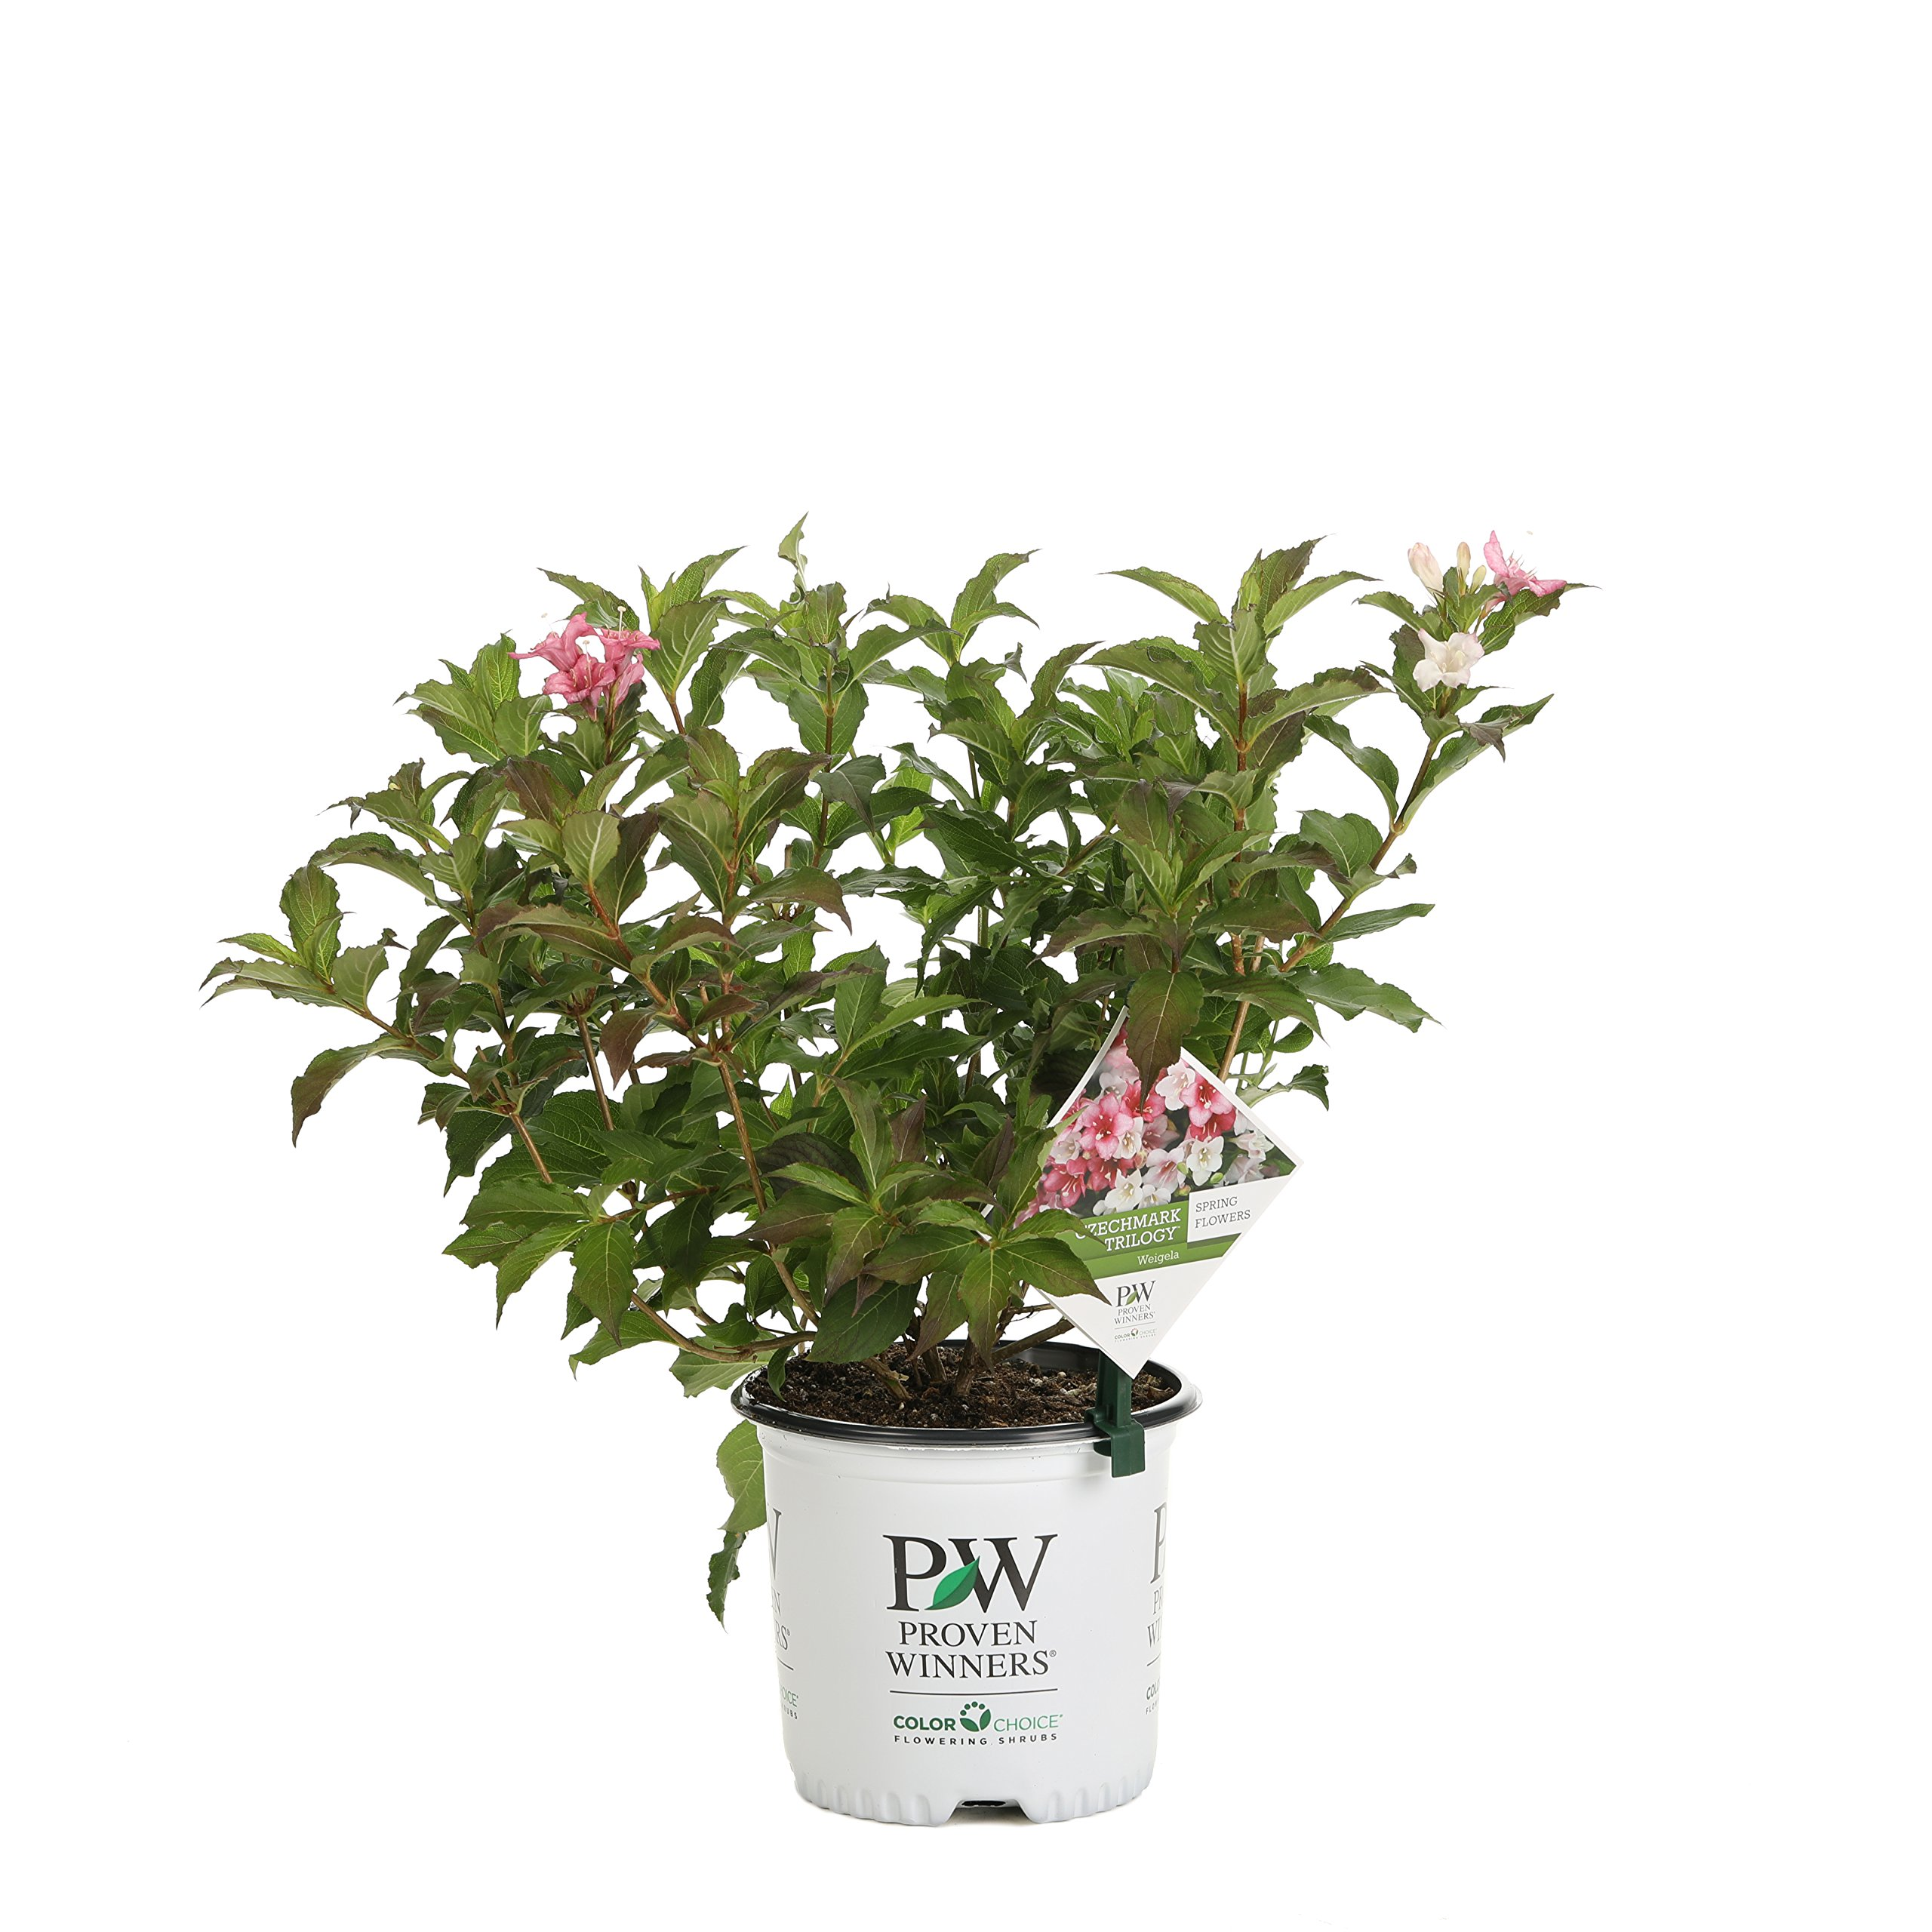 Czechmark Trilogy (Weigela) Live Shrub, White, Pink, and Red Flowers, 1 Gallon by Proven Winners (Image #1)